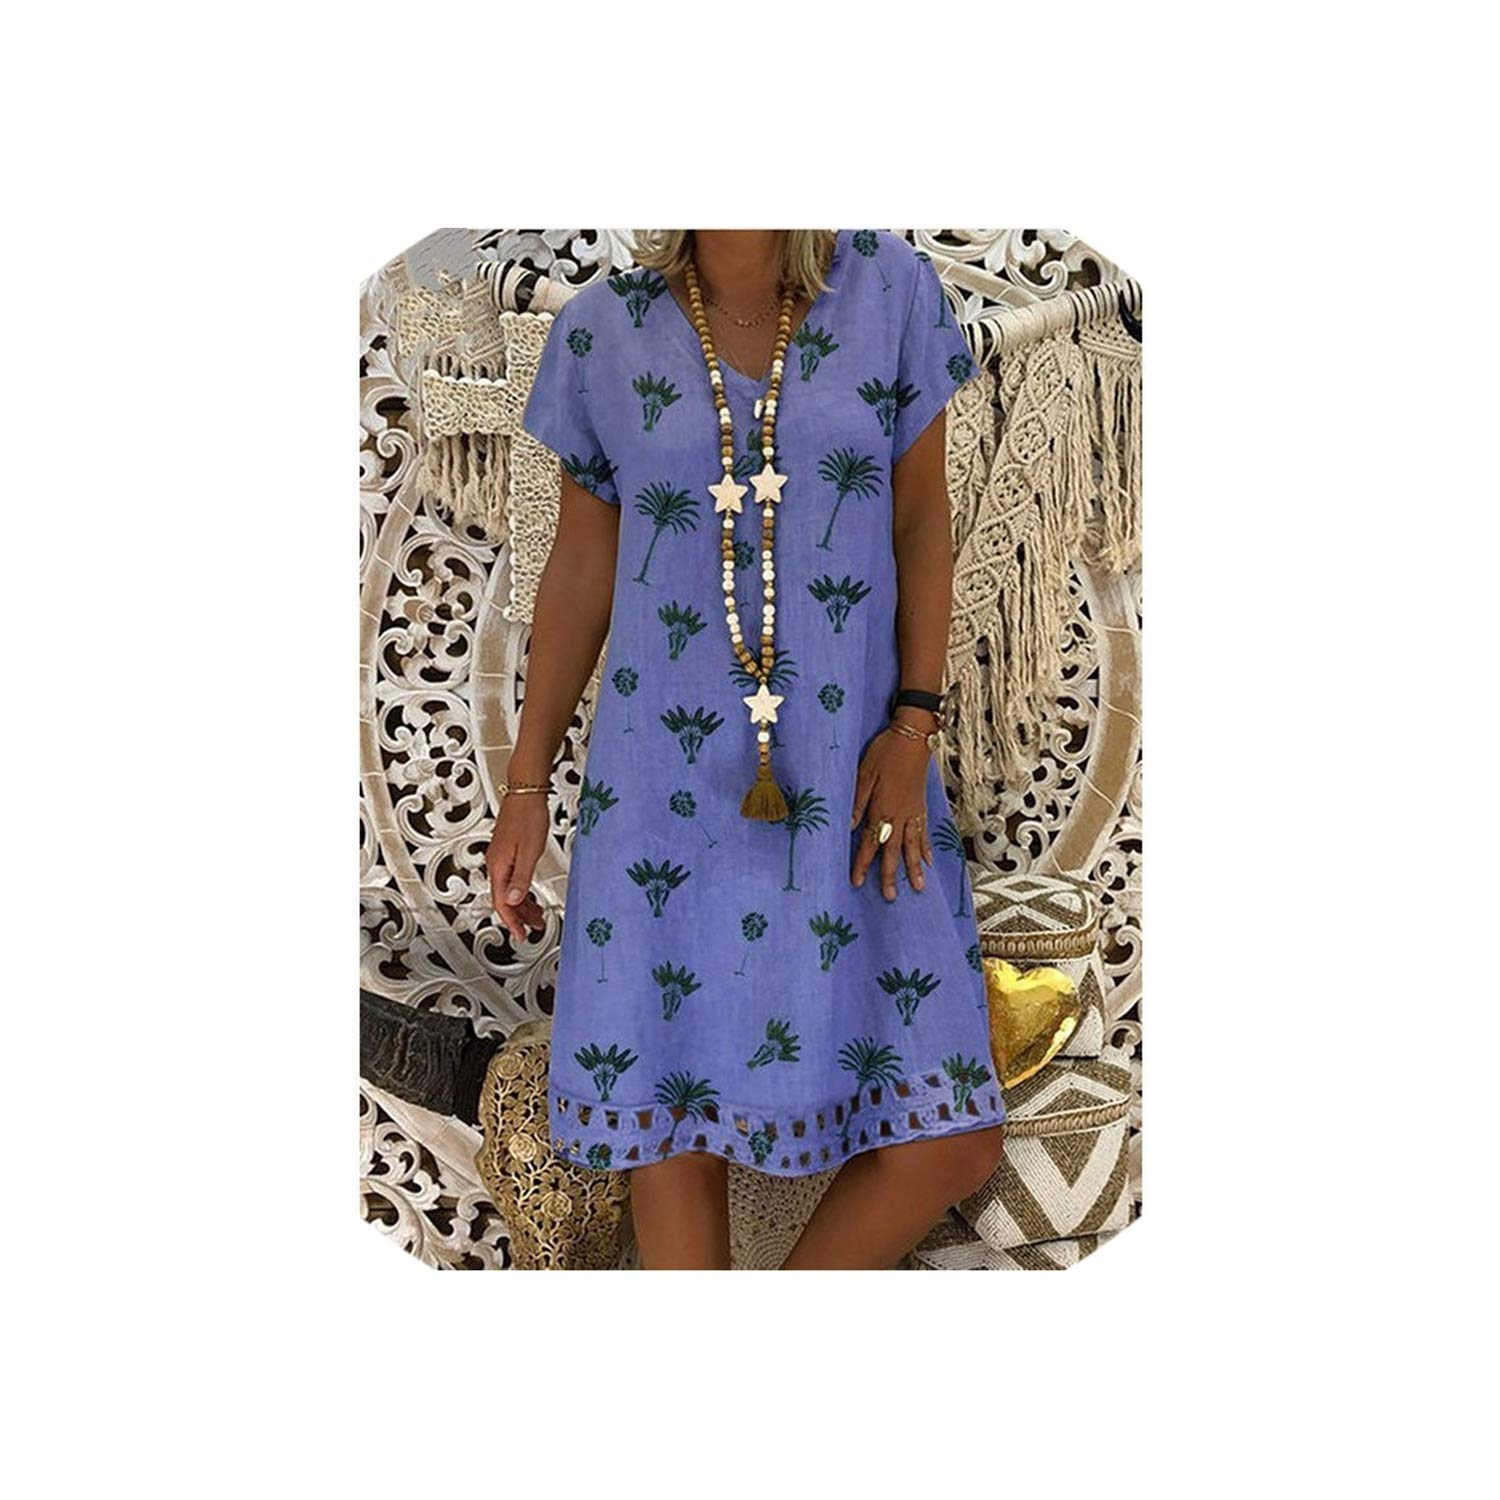 bluee Moonky dresses Loose Casual Dress Summer Women Yellow Floral Midi Dress Plus Size Ladies Shortsleeve A Line Summer Dress